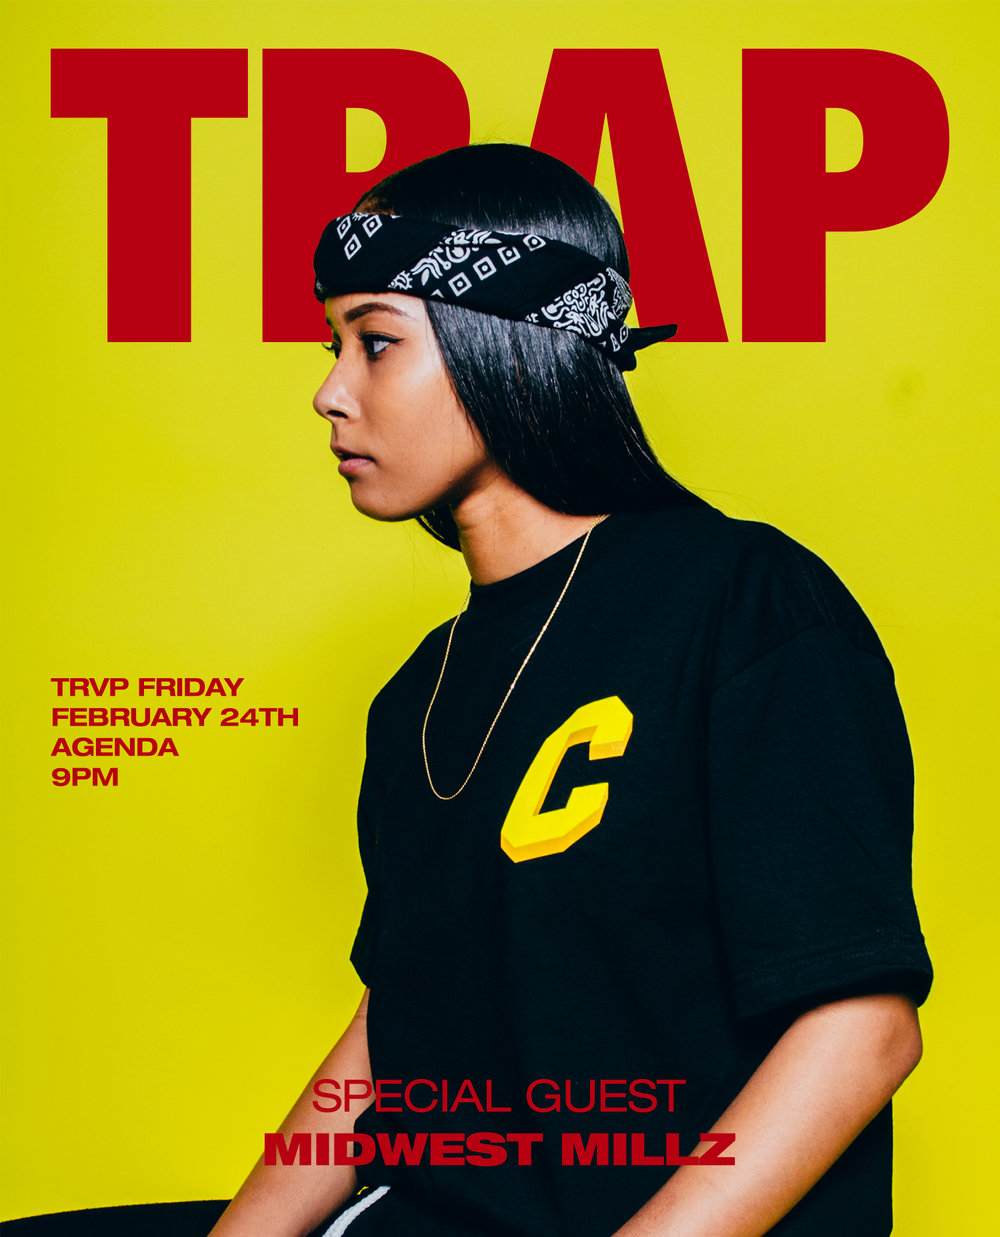 FEBRUARY TRAP FRIDAY / CKDO / ORGNZD VISUALS